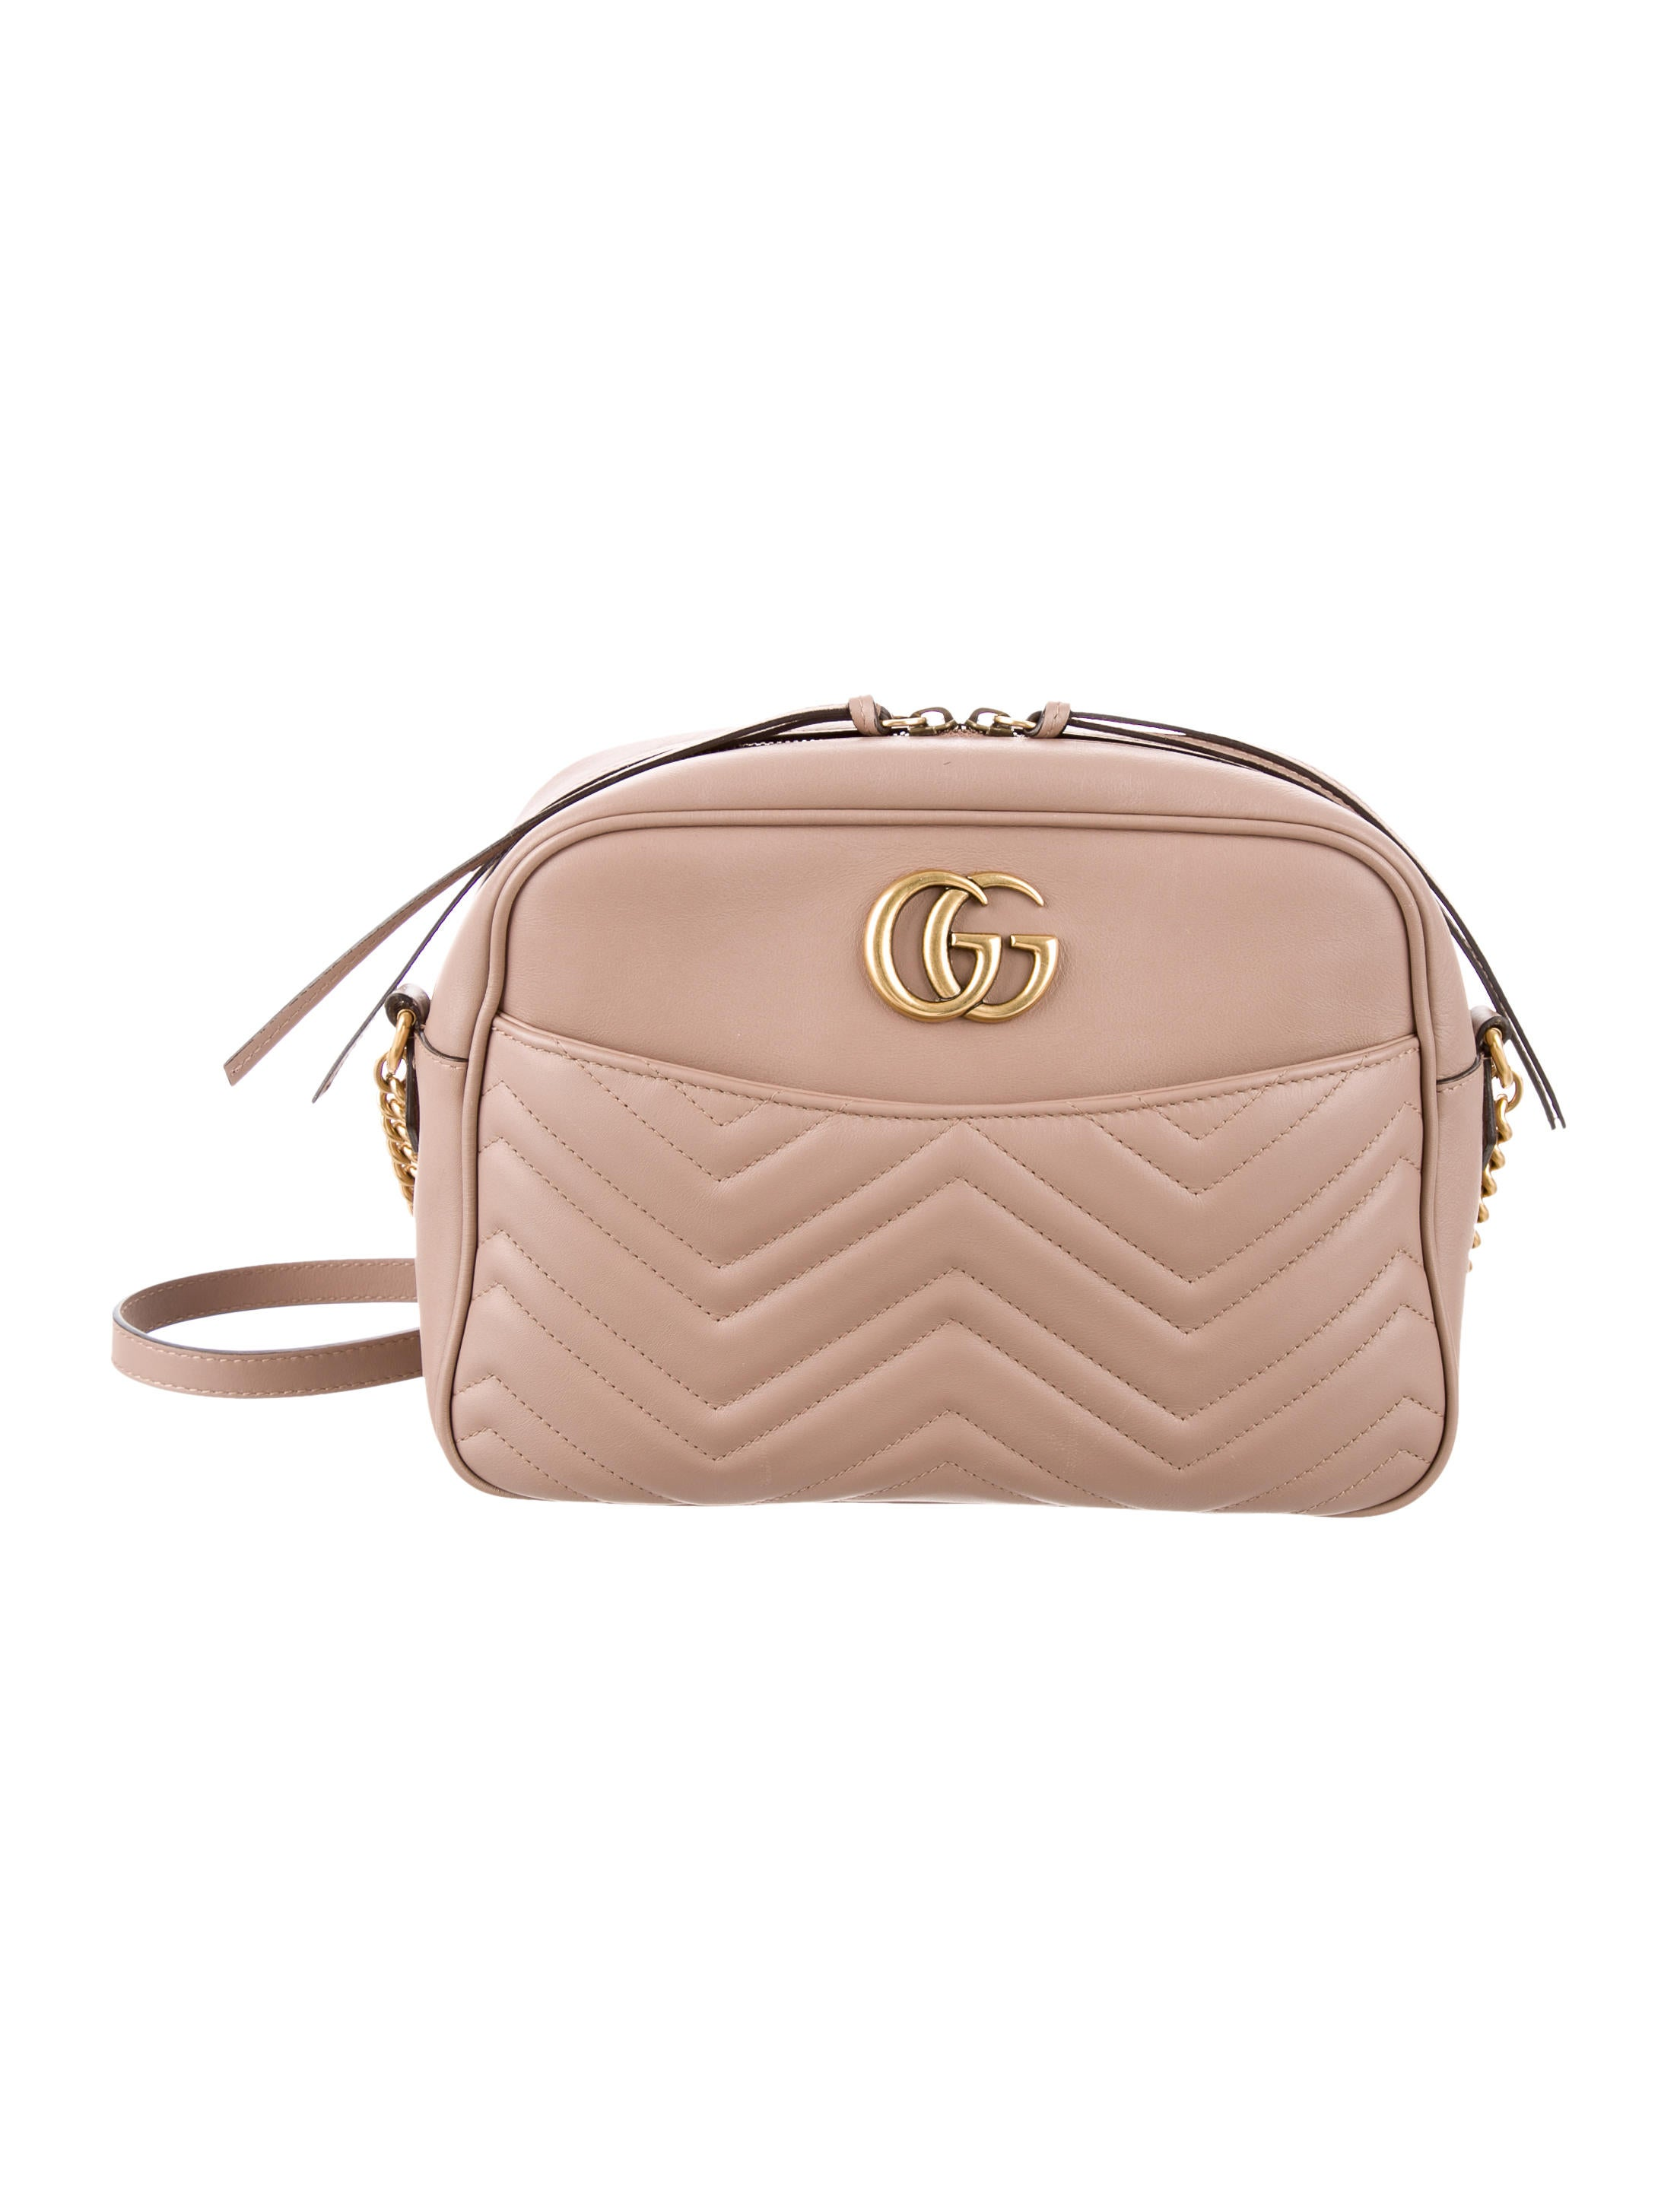 e4c929efccd3 Gucci GG Marmont Medium Matelassé Shoulder Bag - Handbags ...